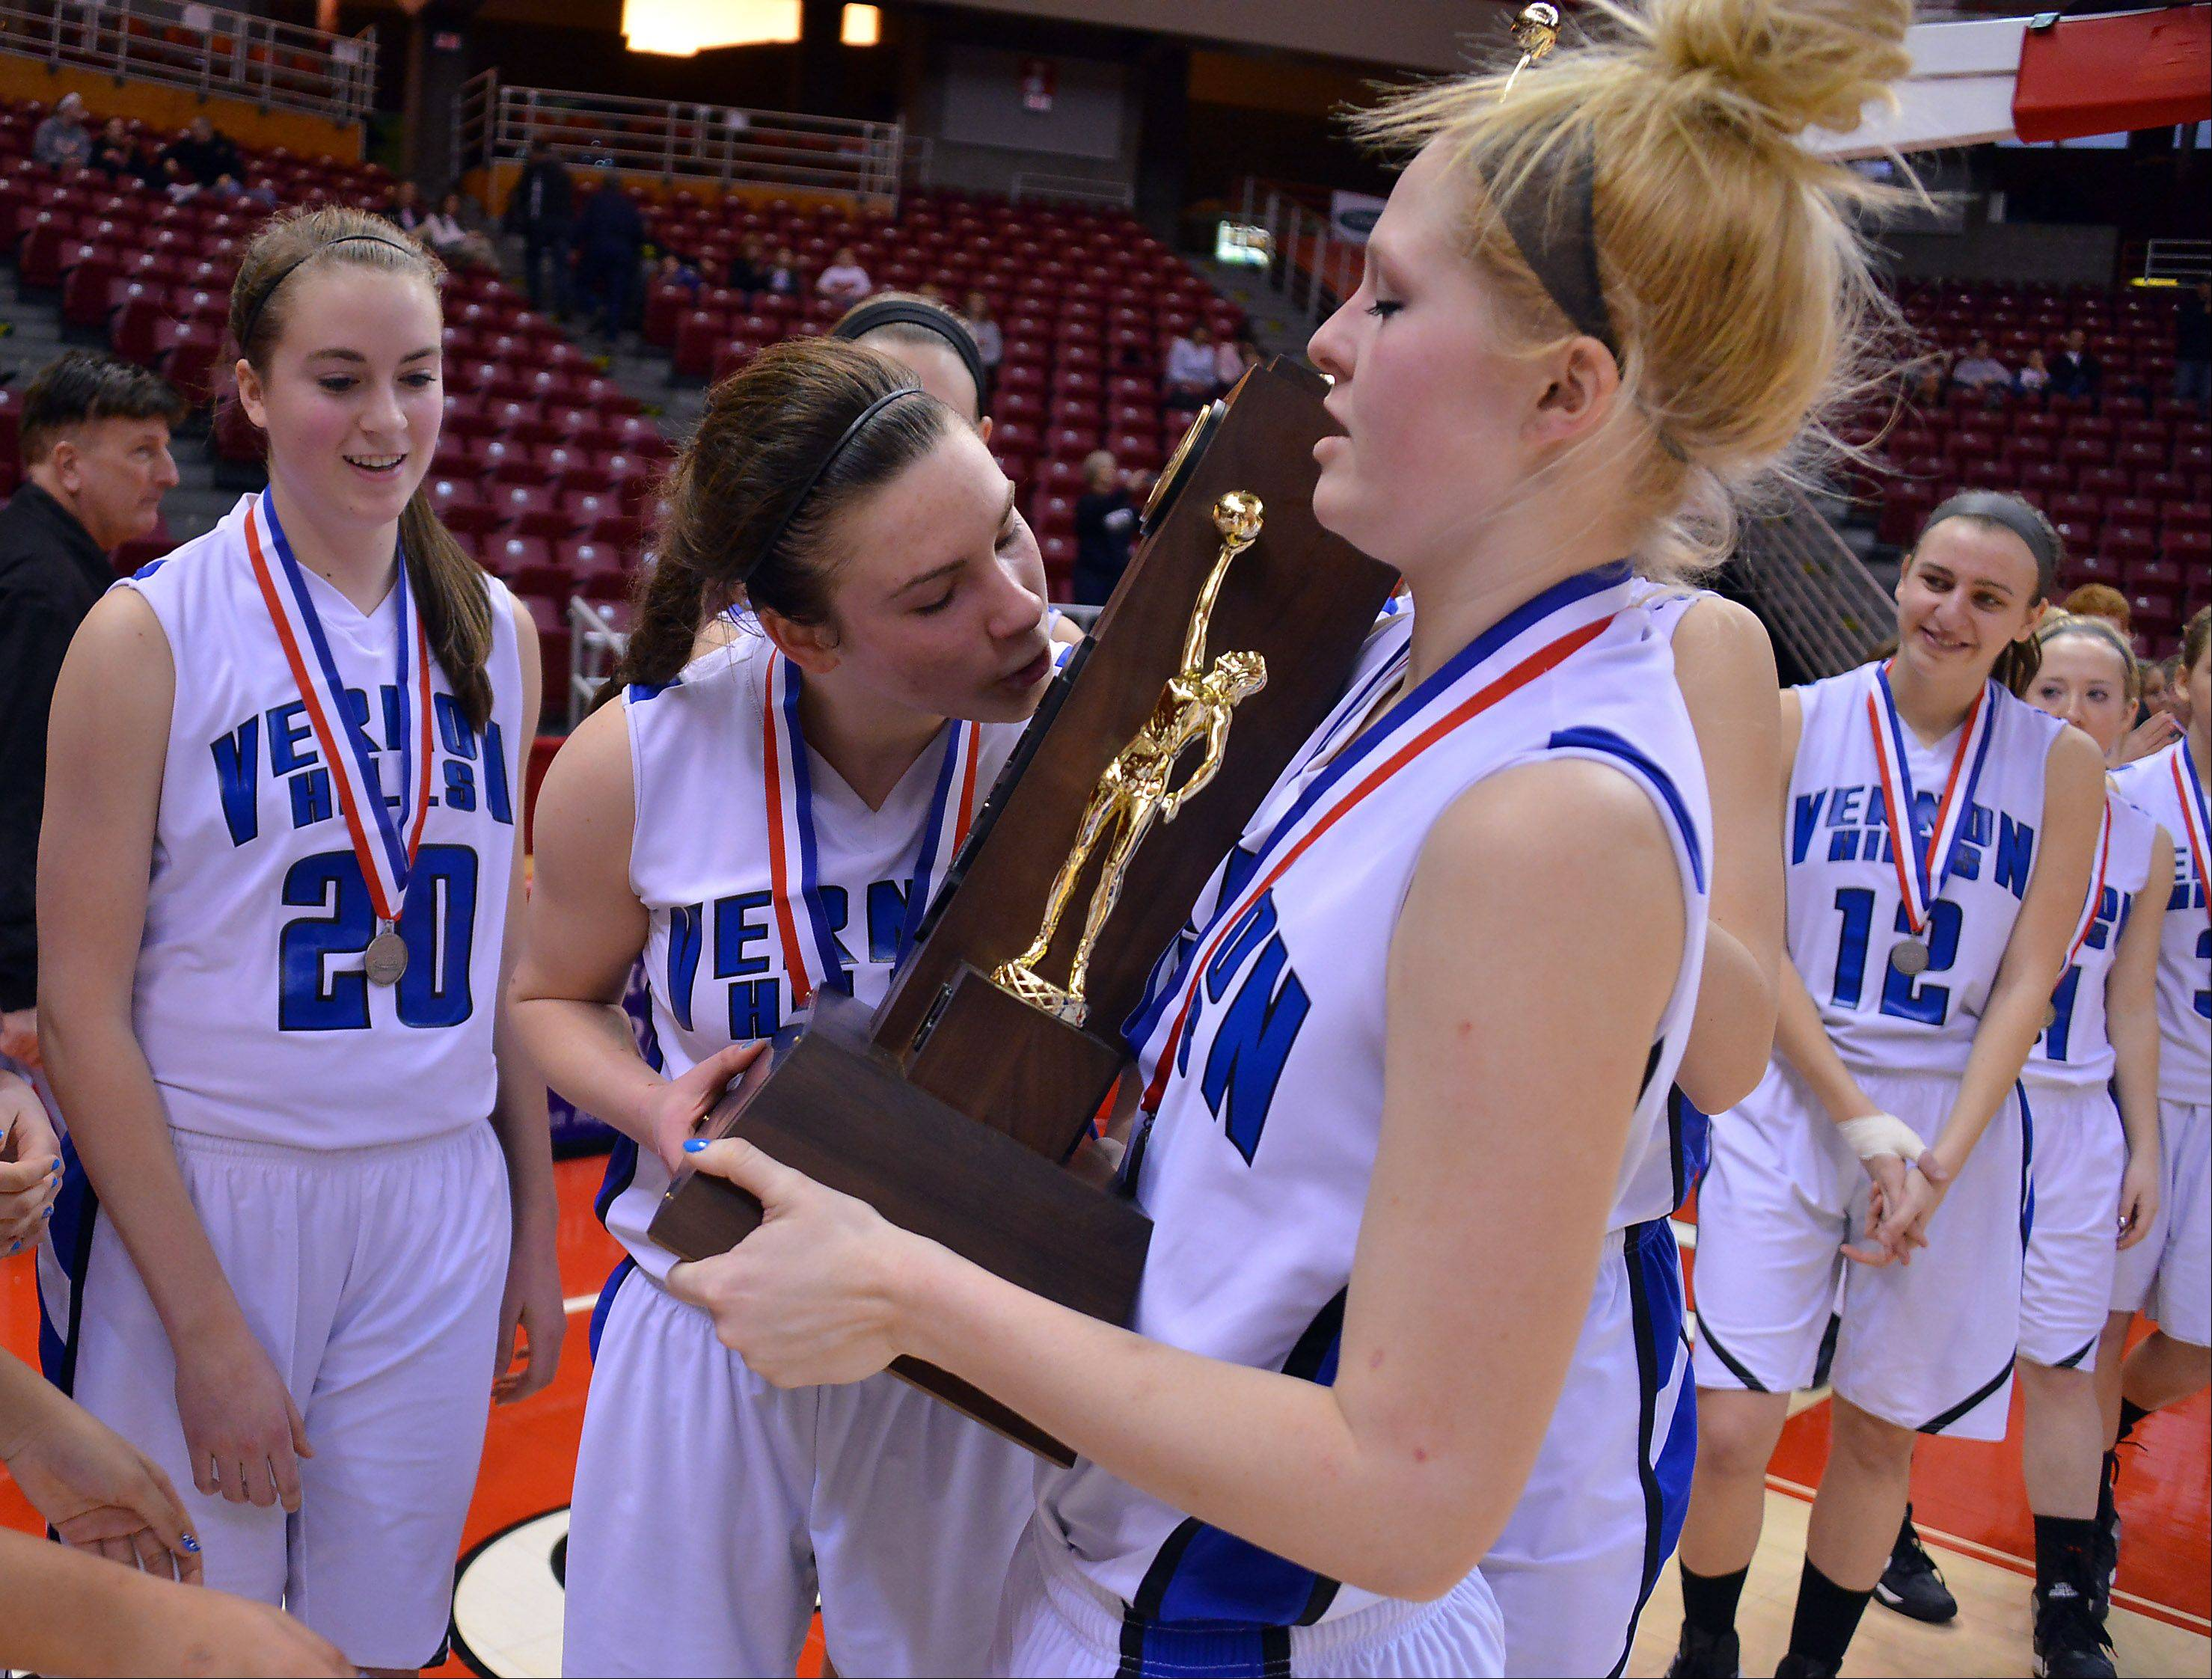 Vernon Hills' Brie Bahlmann kisses the second place trophy as teammate Sydney Smith holds it after they lost to Quincy Notre Dame in the Class 3A state girls basketball championship game in Normal on Saturday.